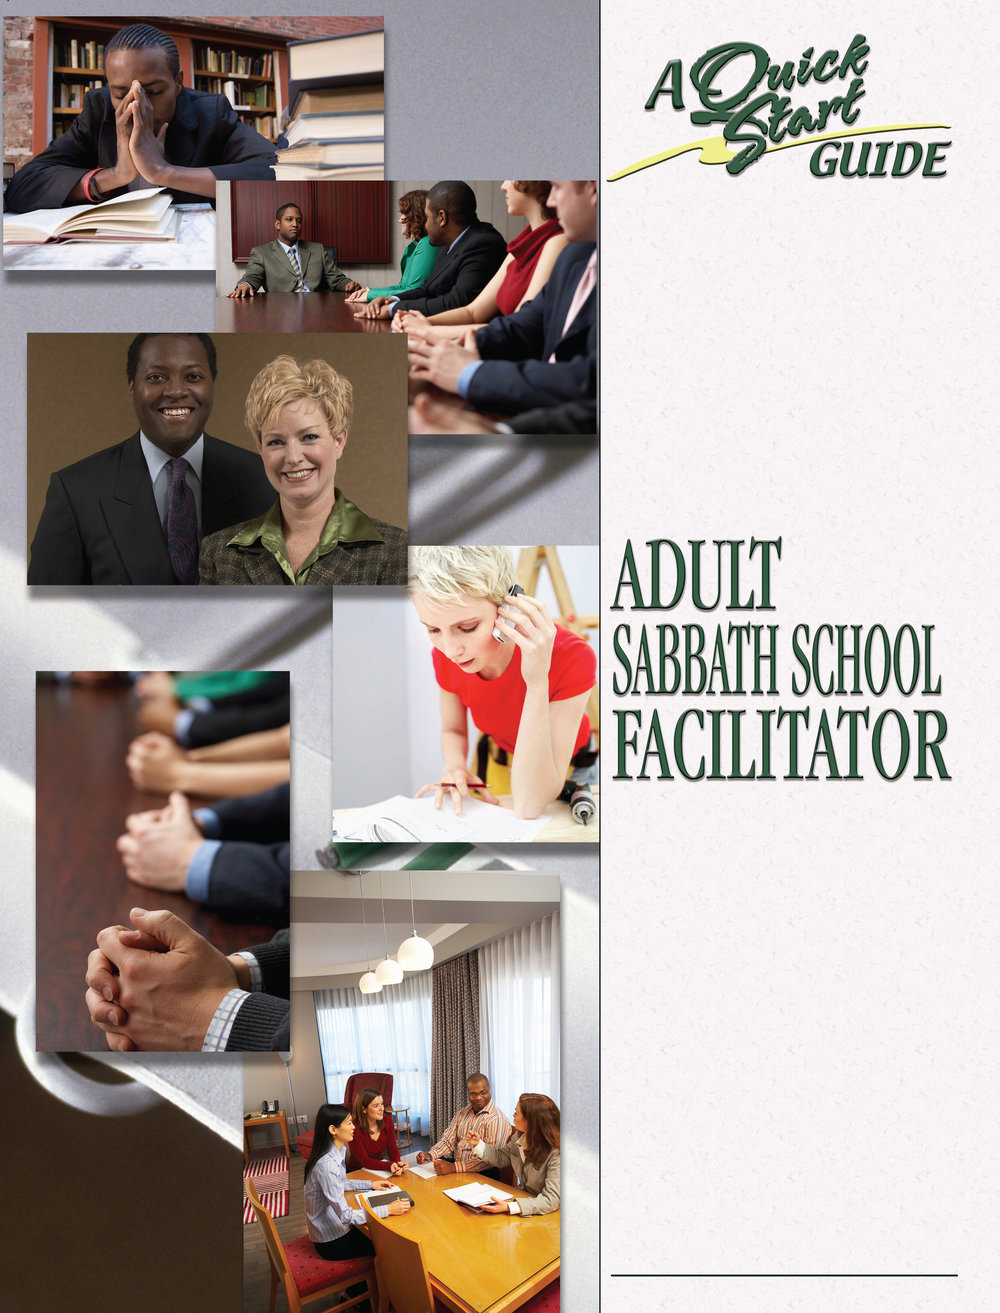 Cover.556264 Adult SS Facilitator QSG-1.jpg